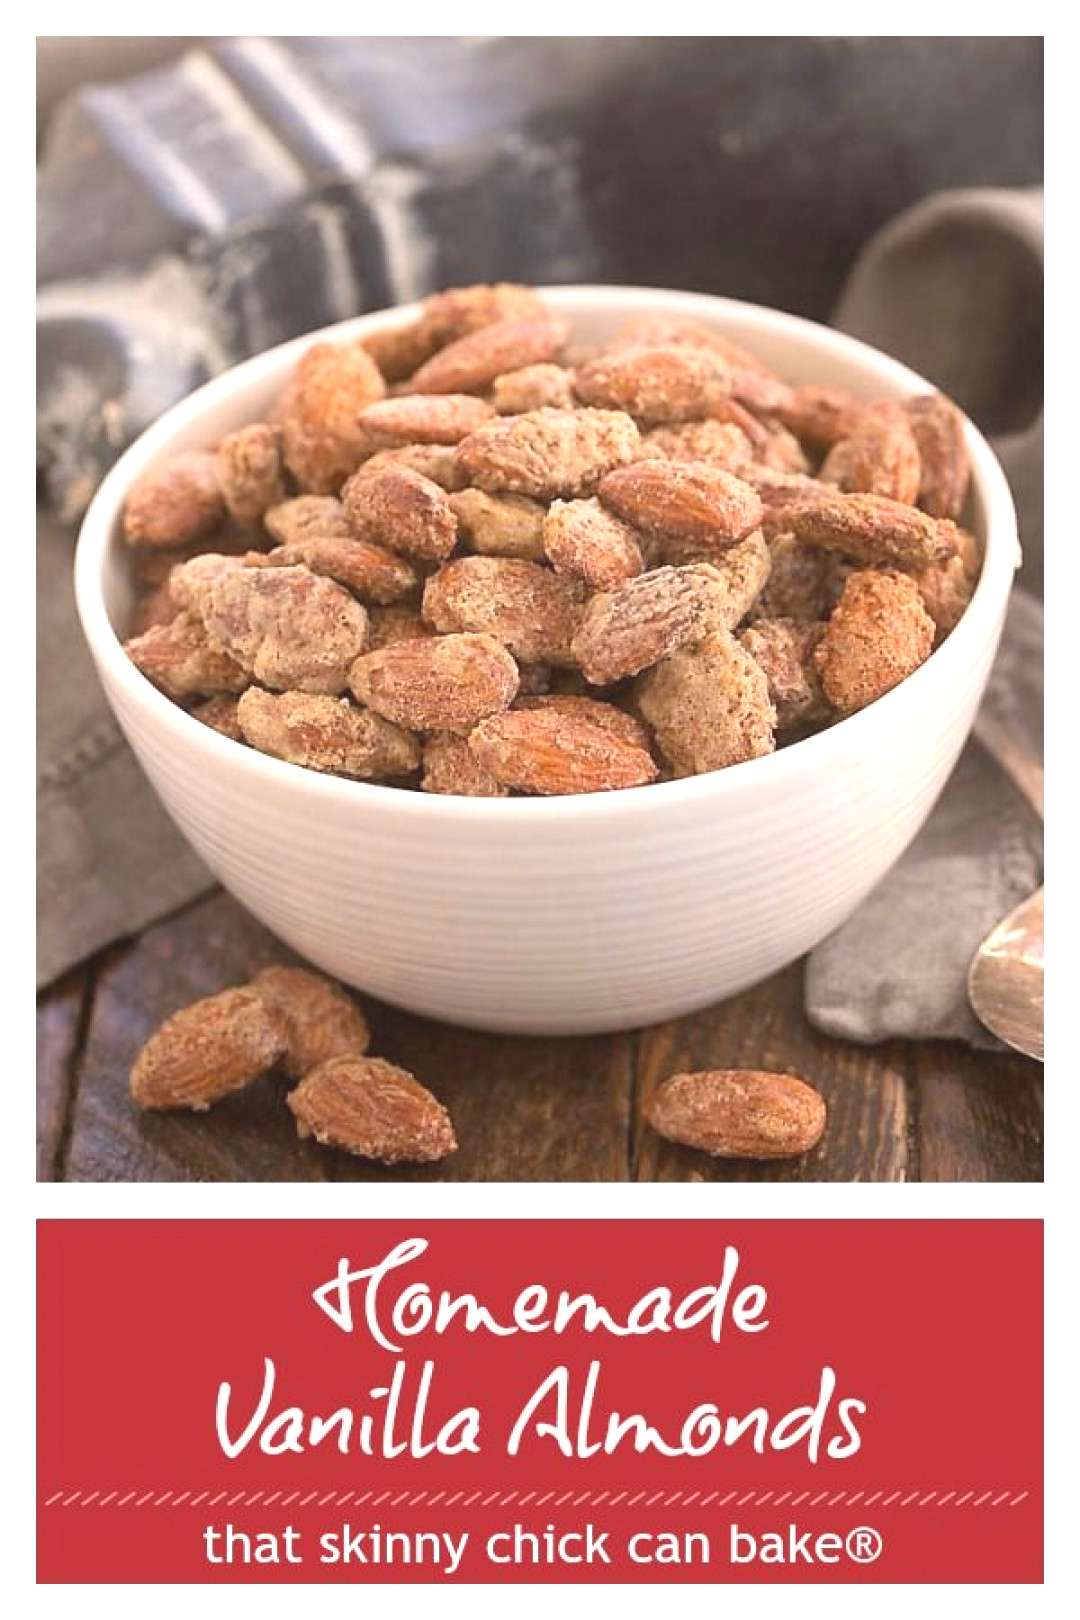 Cinnamon spiced Vanilla Almonds - a homemade gift or a delicious snack that is impossible to resist